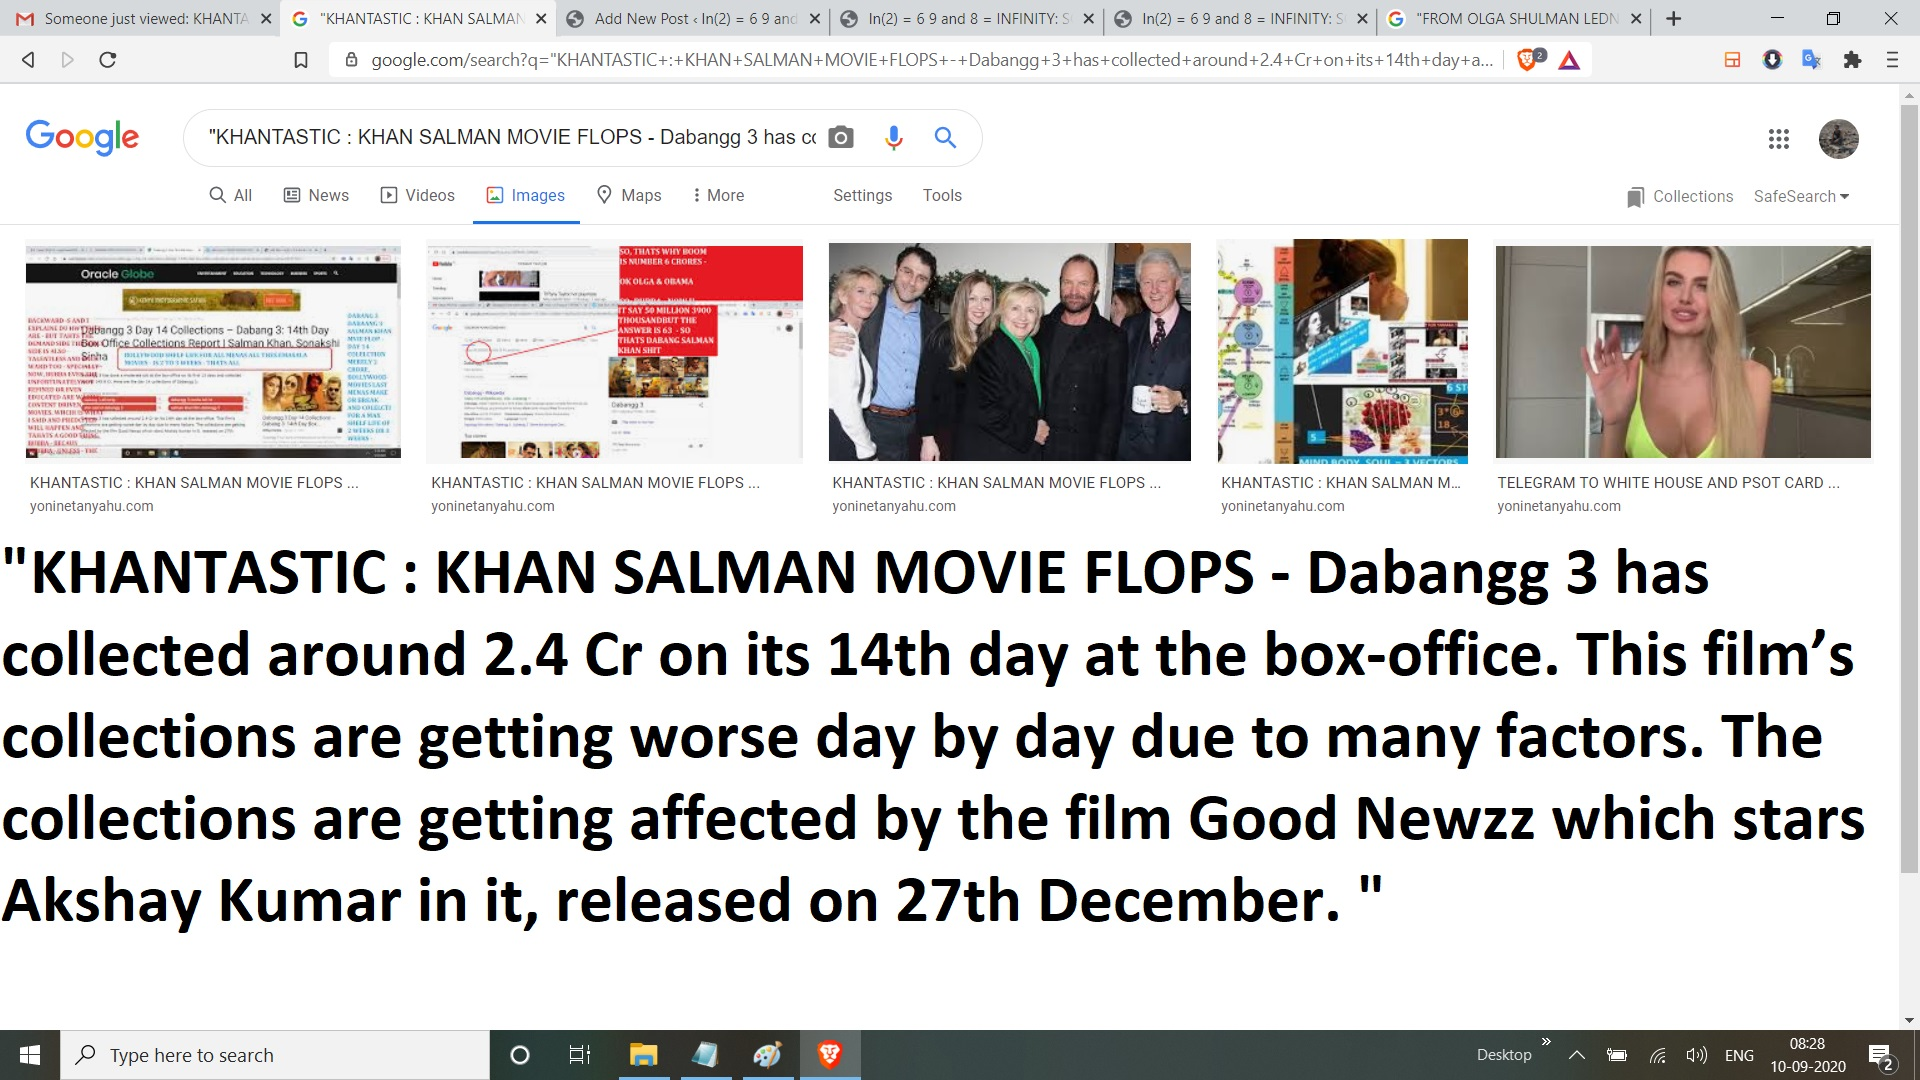 KHANTASTIC KHAN SALMAN MOVIE FLOPS - Dabangg 3 has collected around 2.4 Cr on its 14th day at the box-office. This film's collections are getting worse day by day due to many factors. The collections are getting affected by the film Good Newzz which stars Akshay Kumar in it, released on 27th December